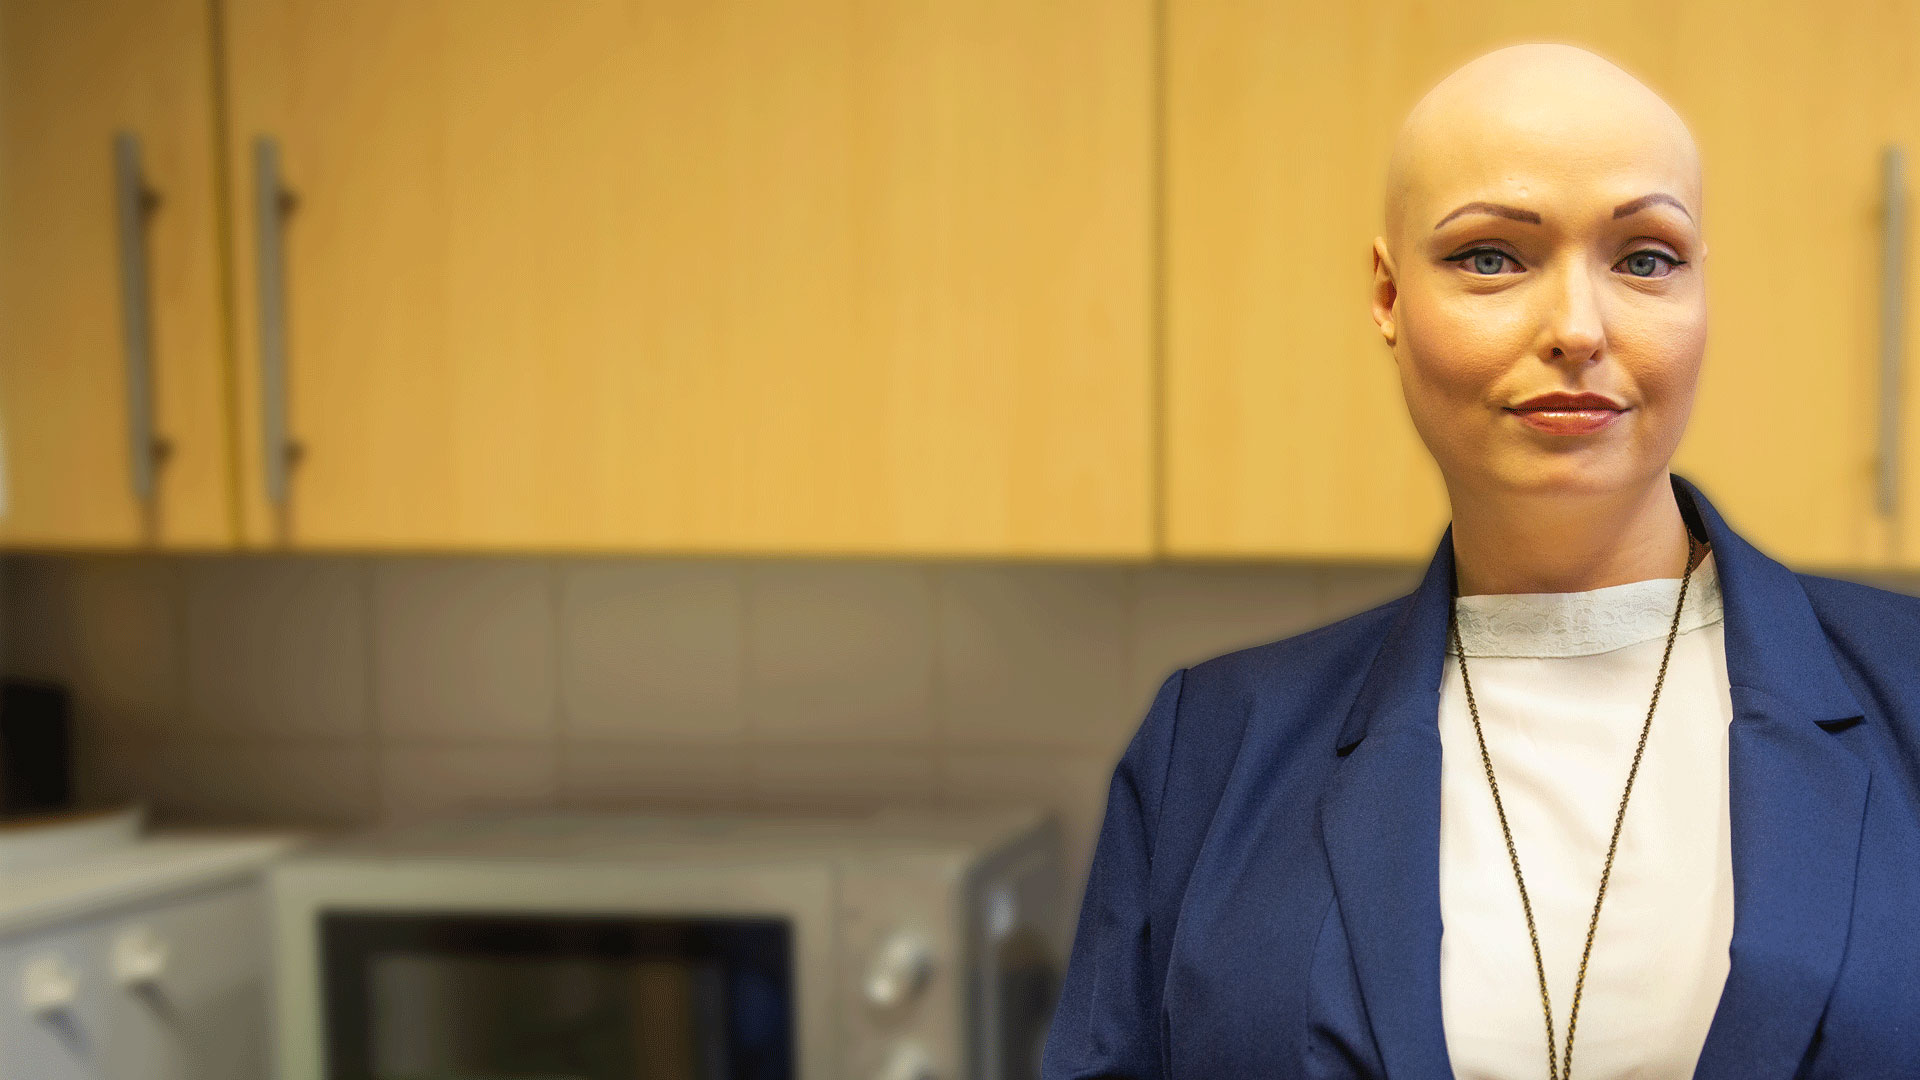 A woman with alopecia stands in the kitchen, gazing at the camera